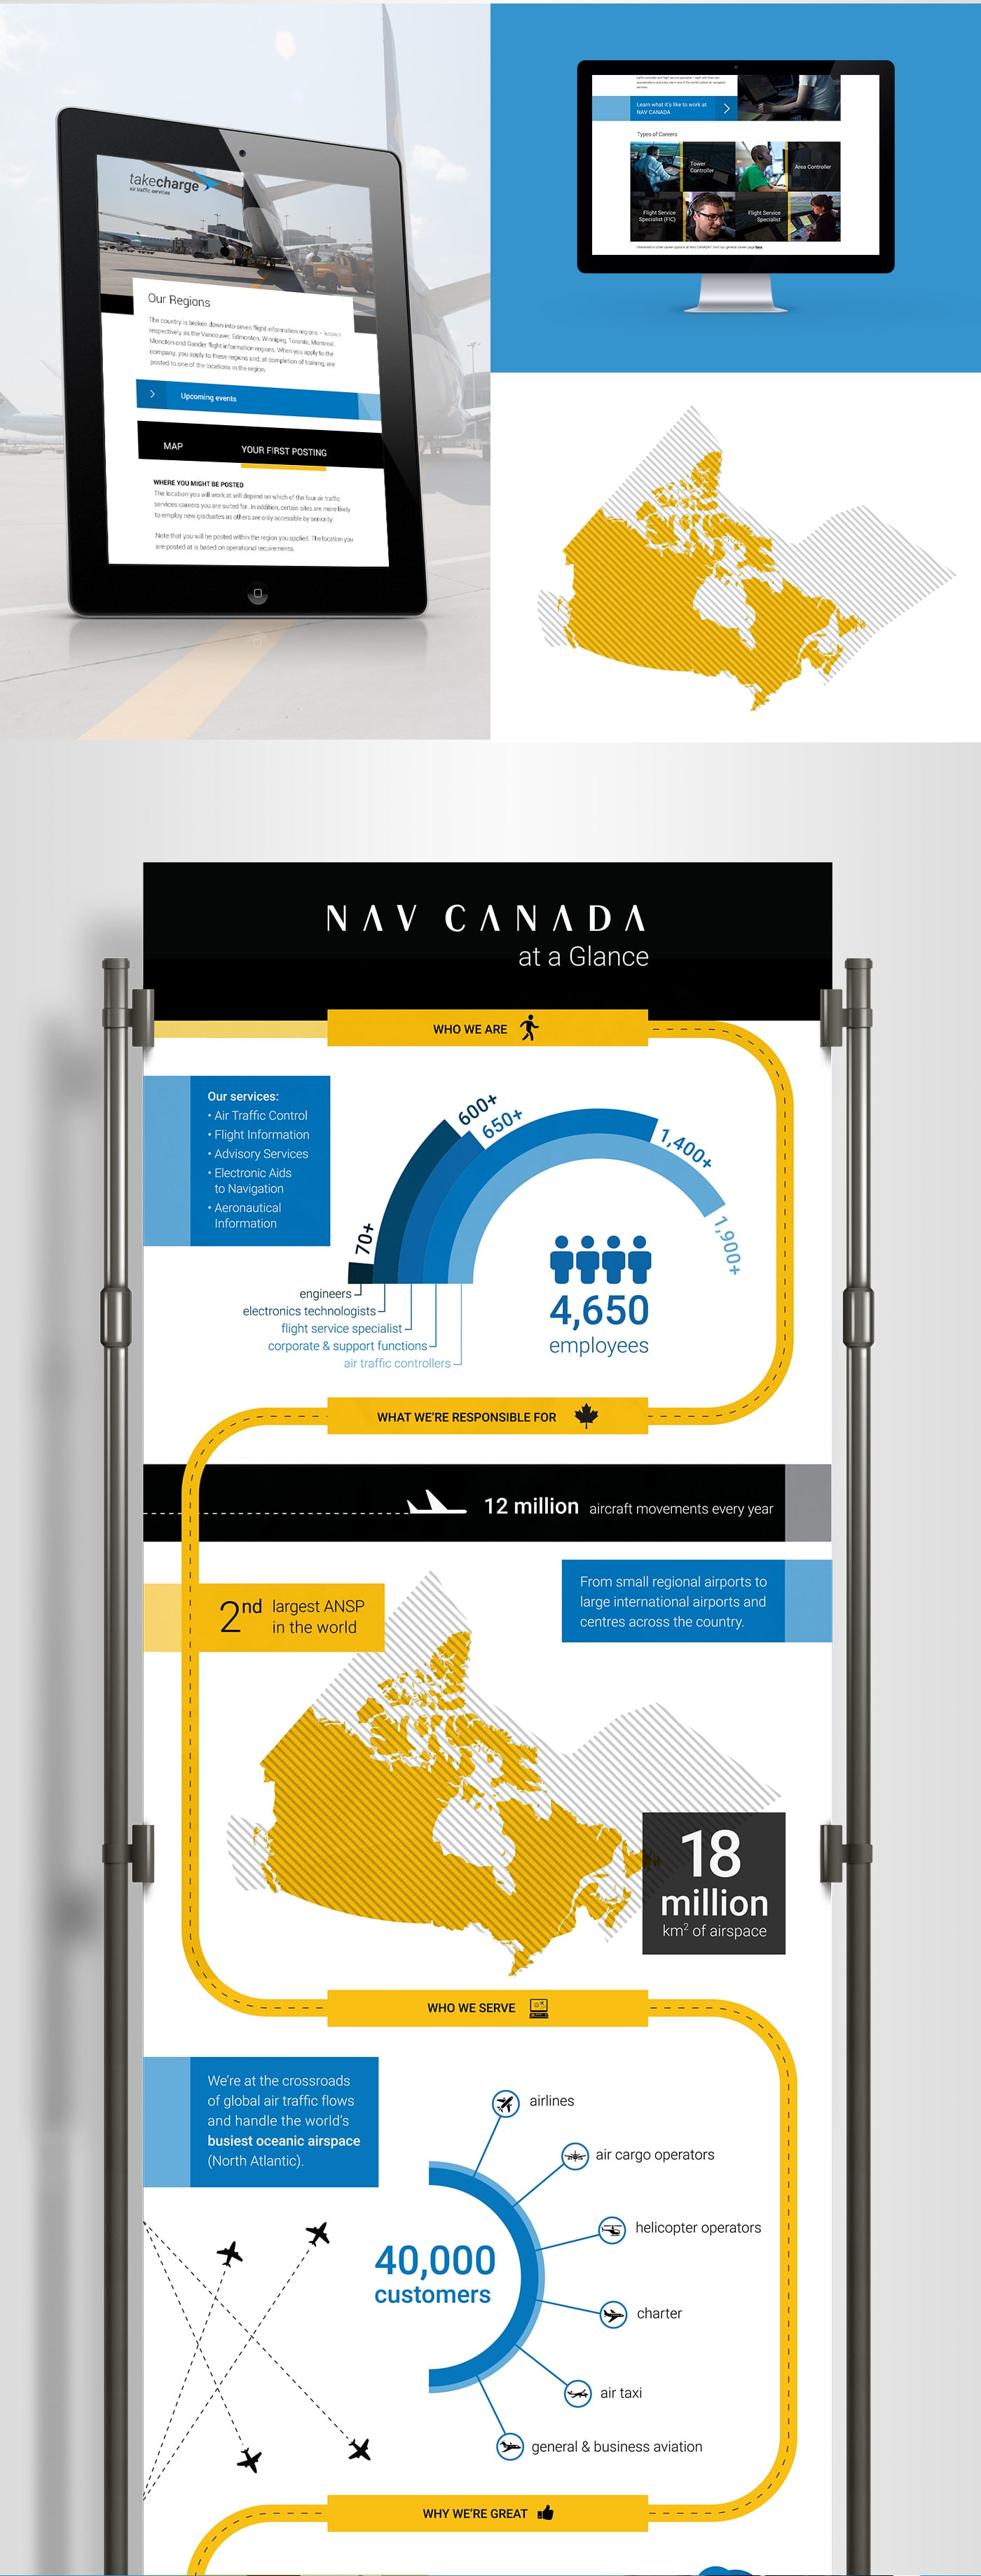 Tablet and desktop view of the NAV CANADA Website and an infographic for the companie's statistic